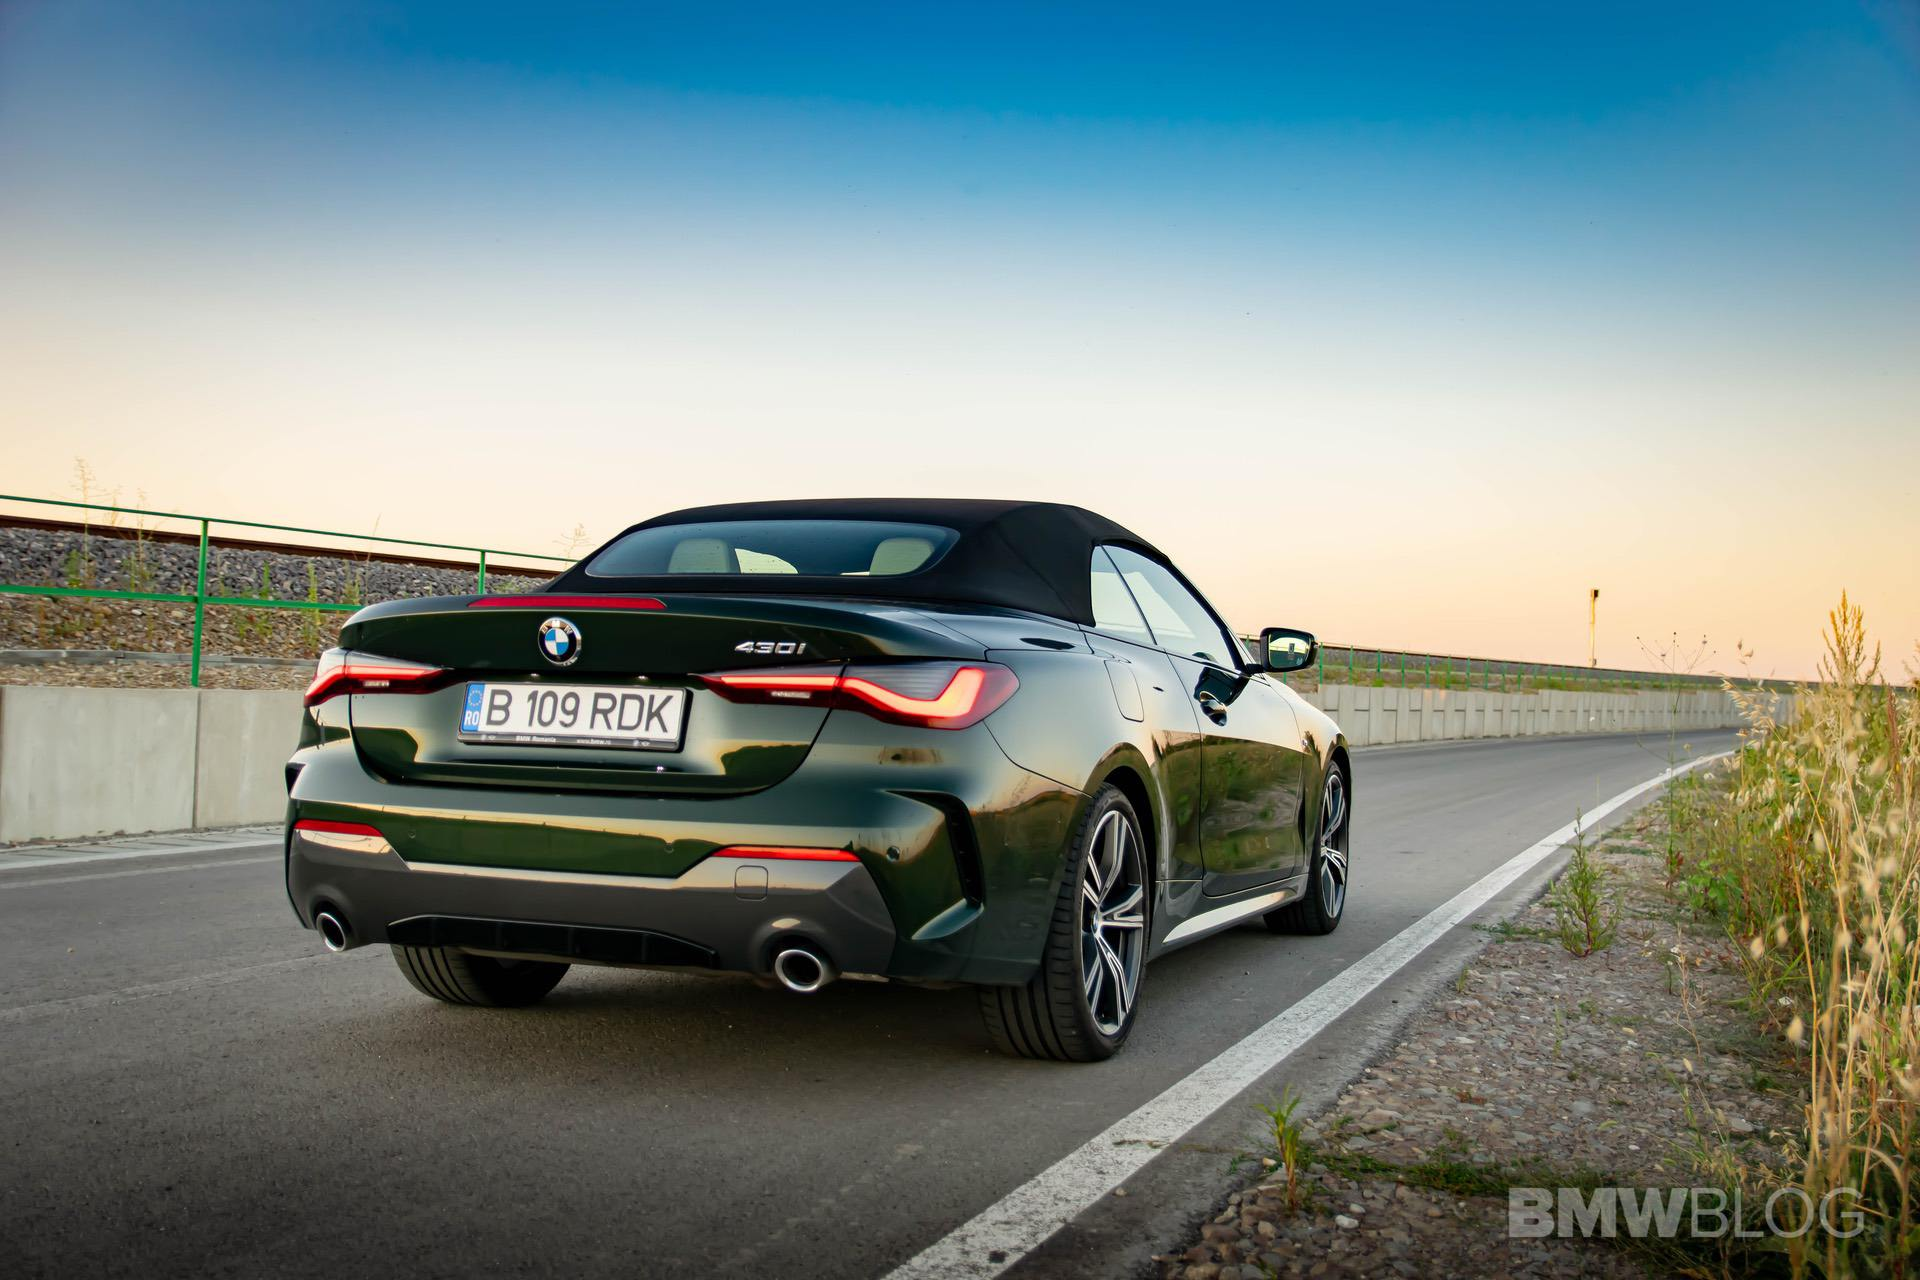 TEST DRIVE: 2021 BMW 4 Series Convertible – Looking Past The Kidney Grille